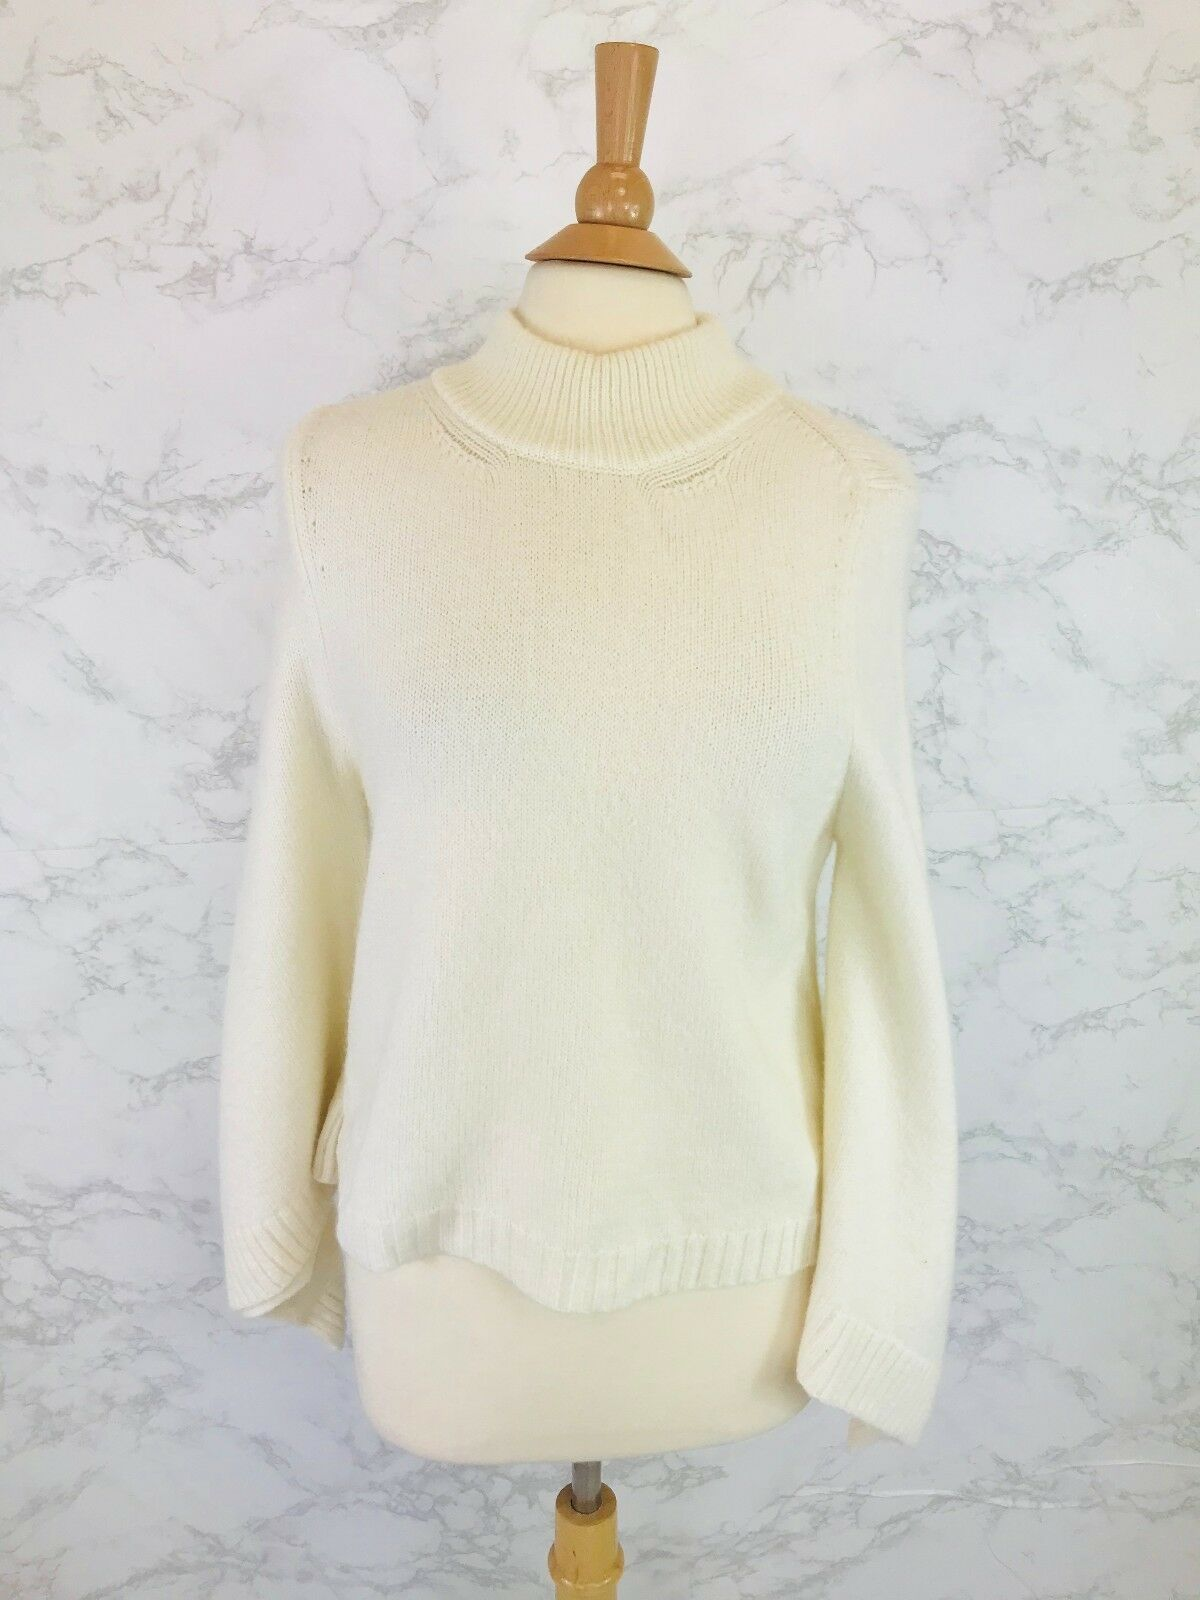 Anthropologie Cashmere Collection Women's Ivory Bell Sleeve Sweater Size S  118